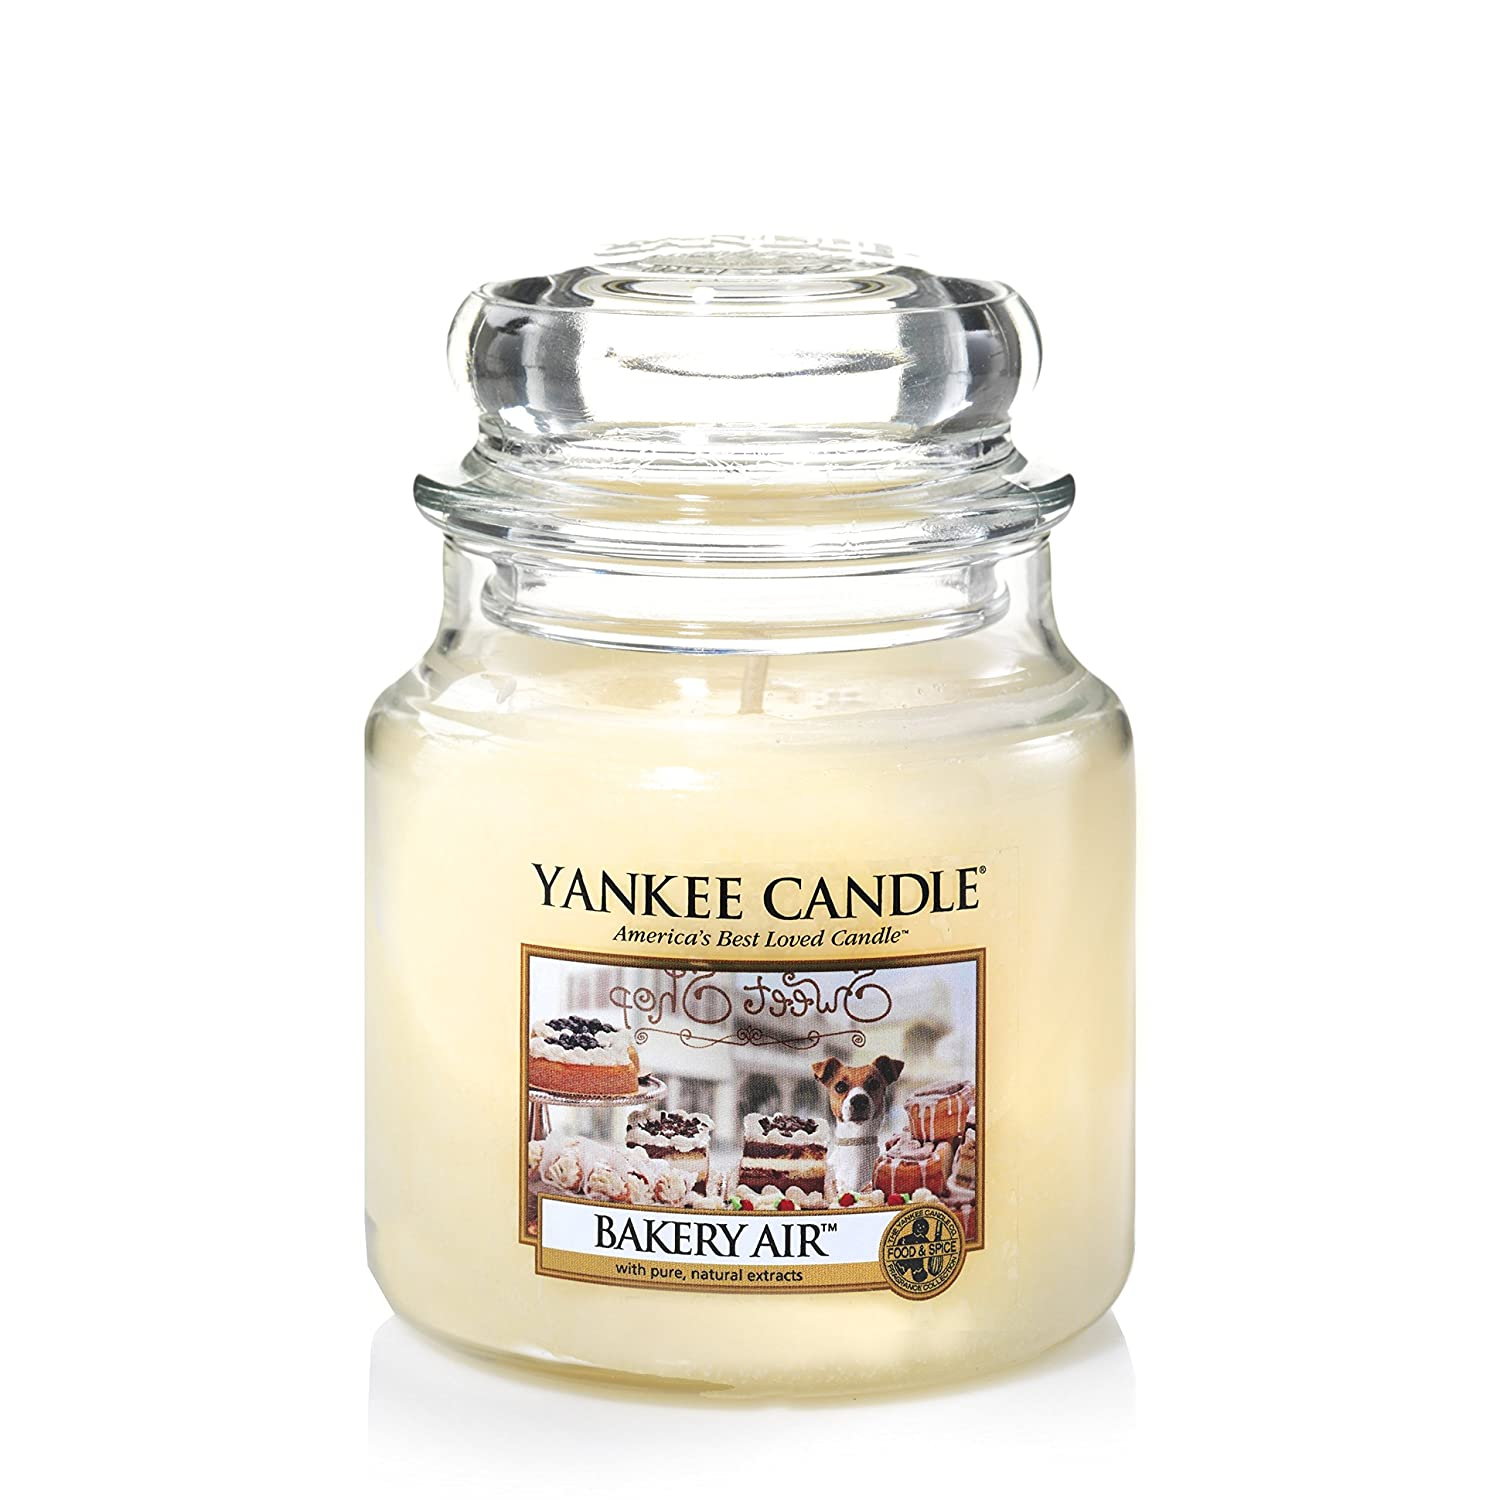 Yankee Candle Large 2-Wick Tumbler Candle, Bakery Air Yankee Candle Company 1351679